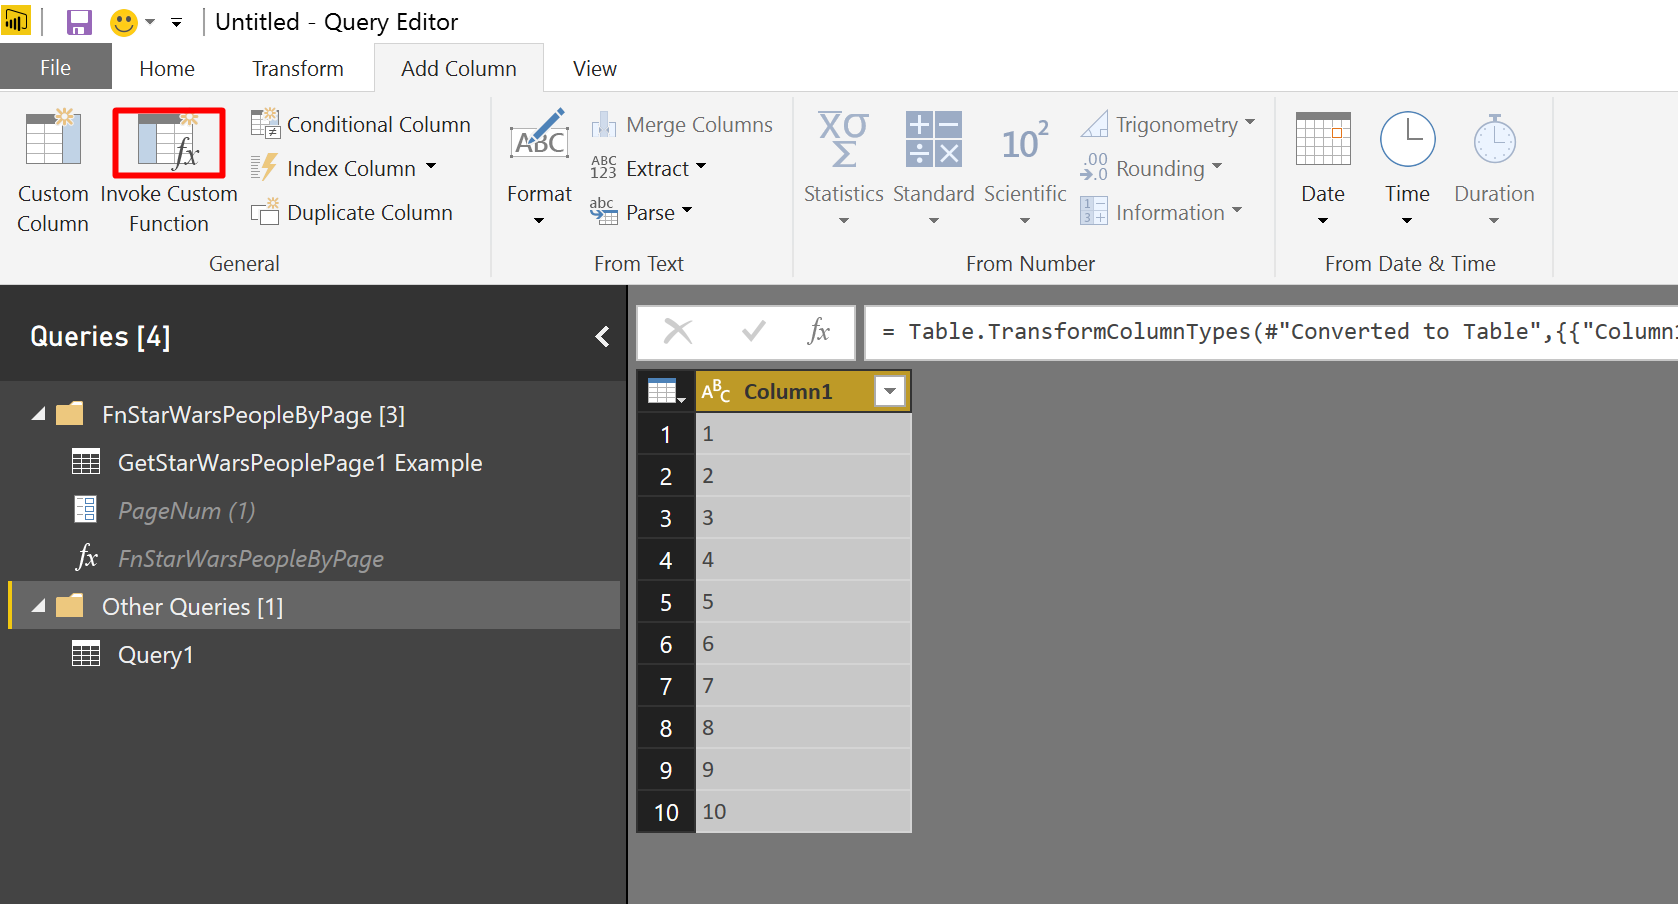 We can invoke the function from the UI using Invoke Custom Function in Power BI.